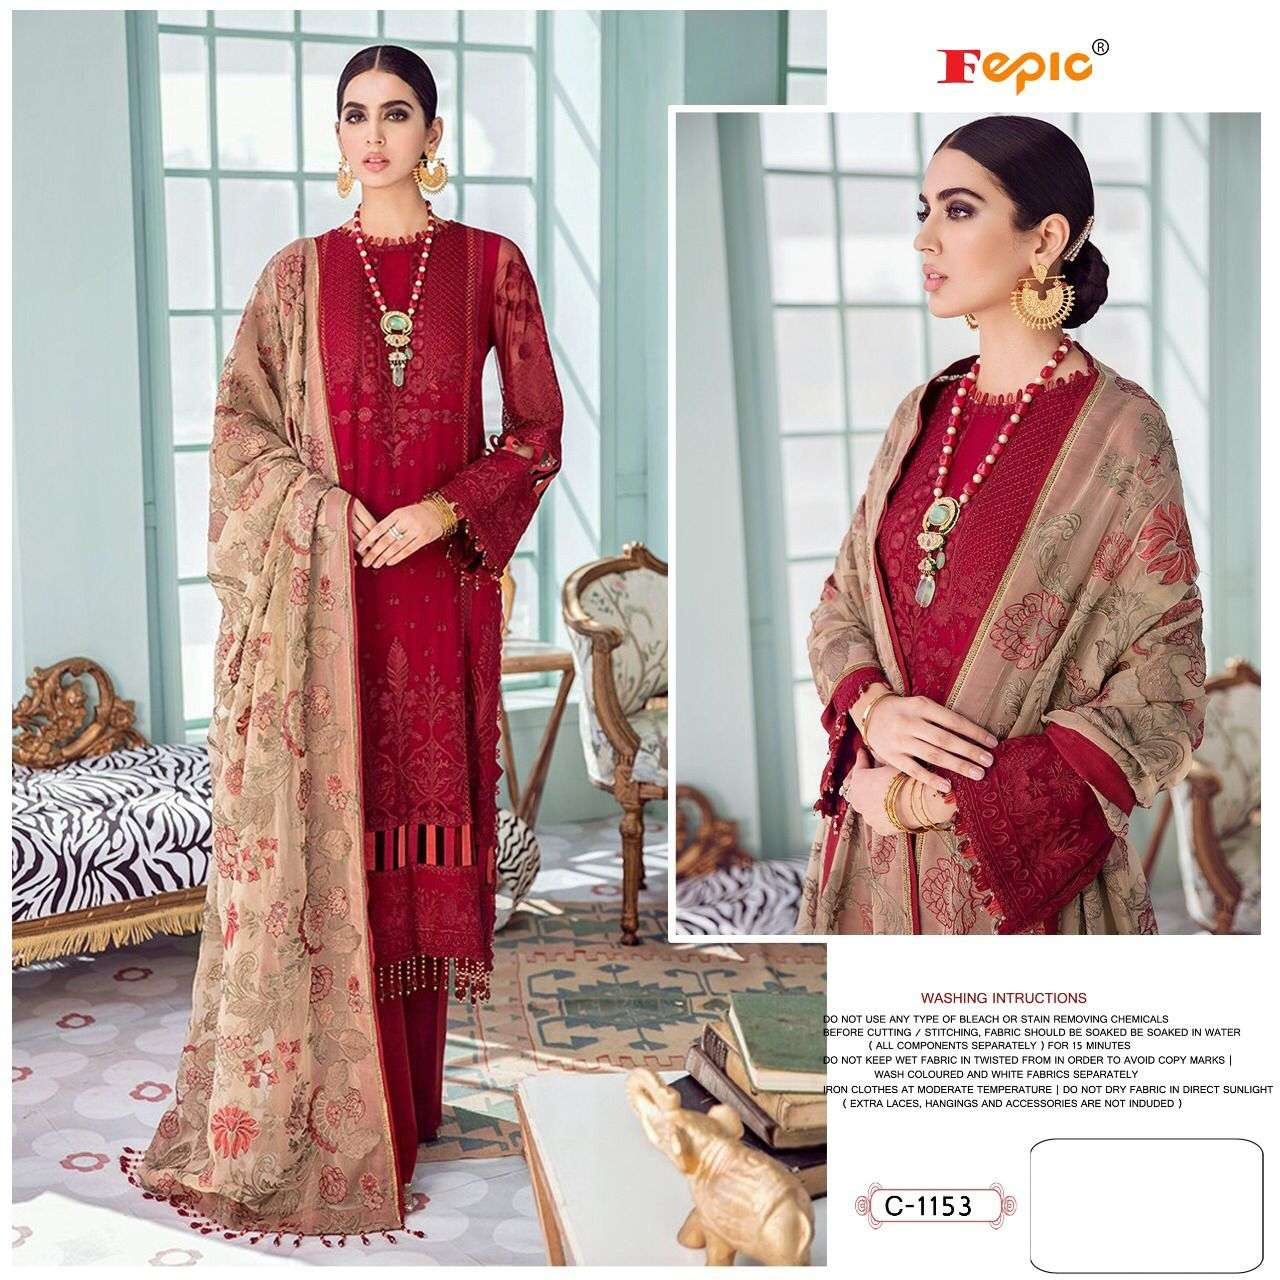 FEPIC ROSEMEEN D.NO-C 1153 DESIGNER GEORGETTE WITH HEAVY EMBROIDERY WORK PARTYWEAR PAKISTANI REPLICA SUITS IN SINGLES